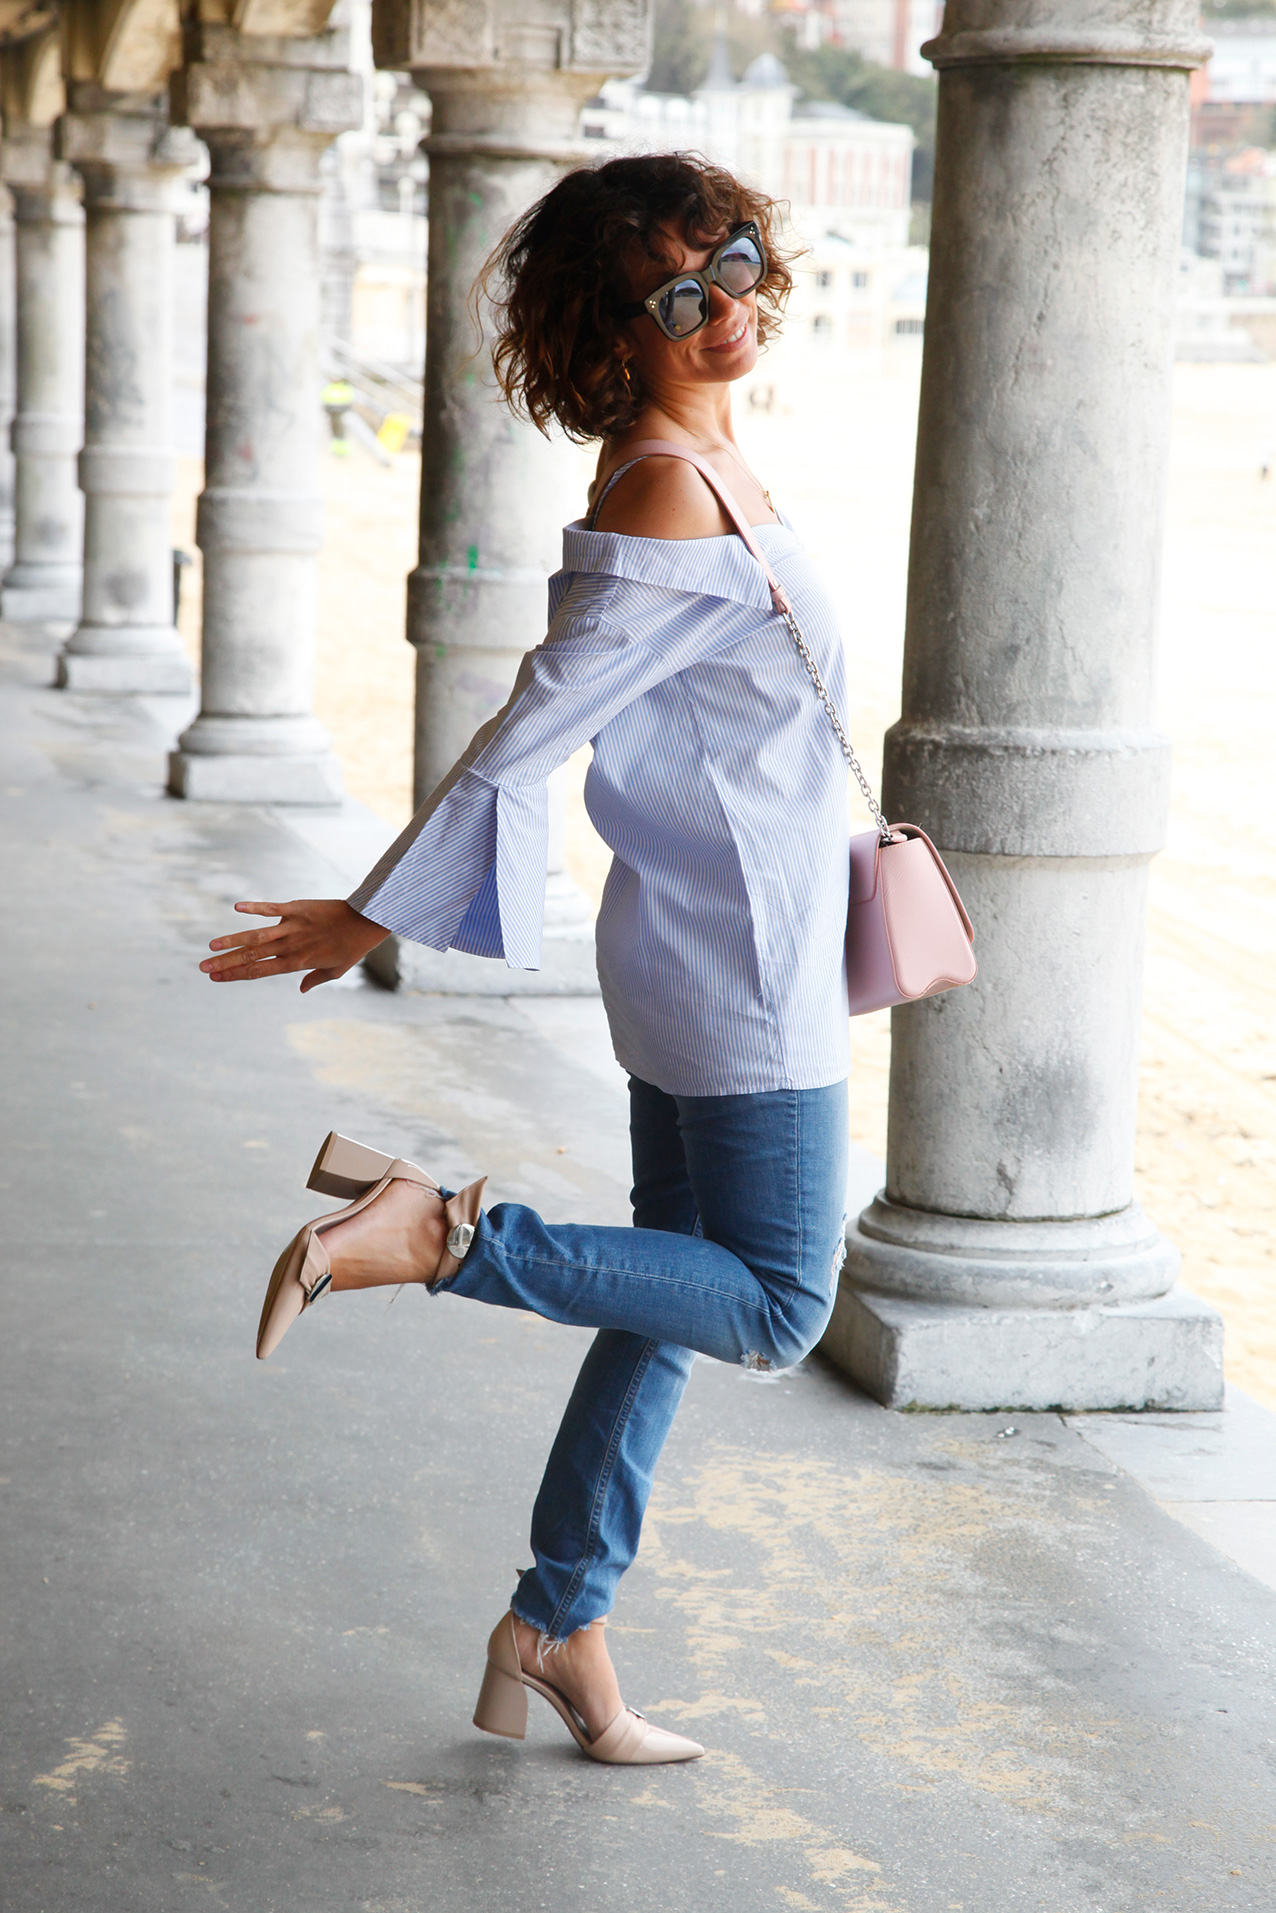 off_the_shoulders_shirt-fench-style-cool_lemonade-streetsyle_blogger